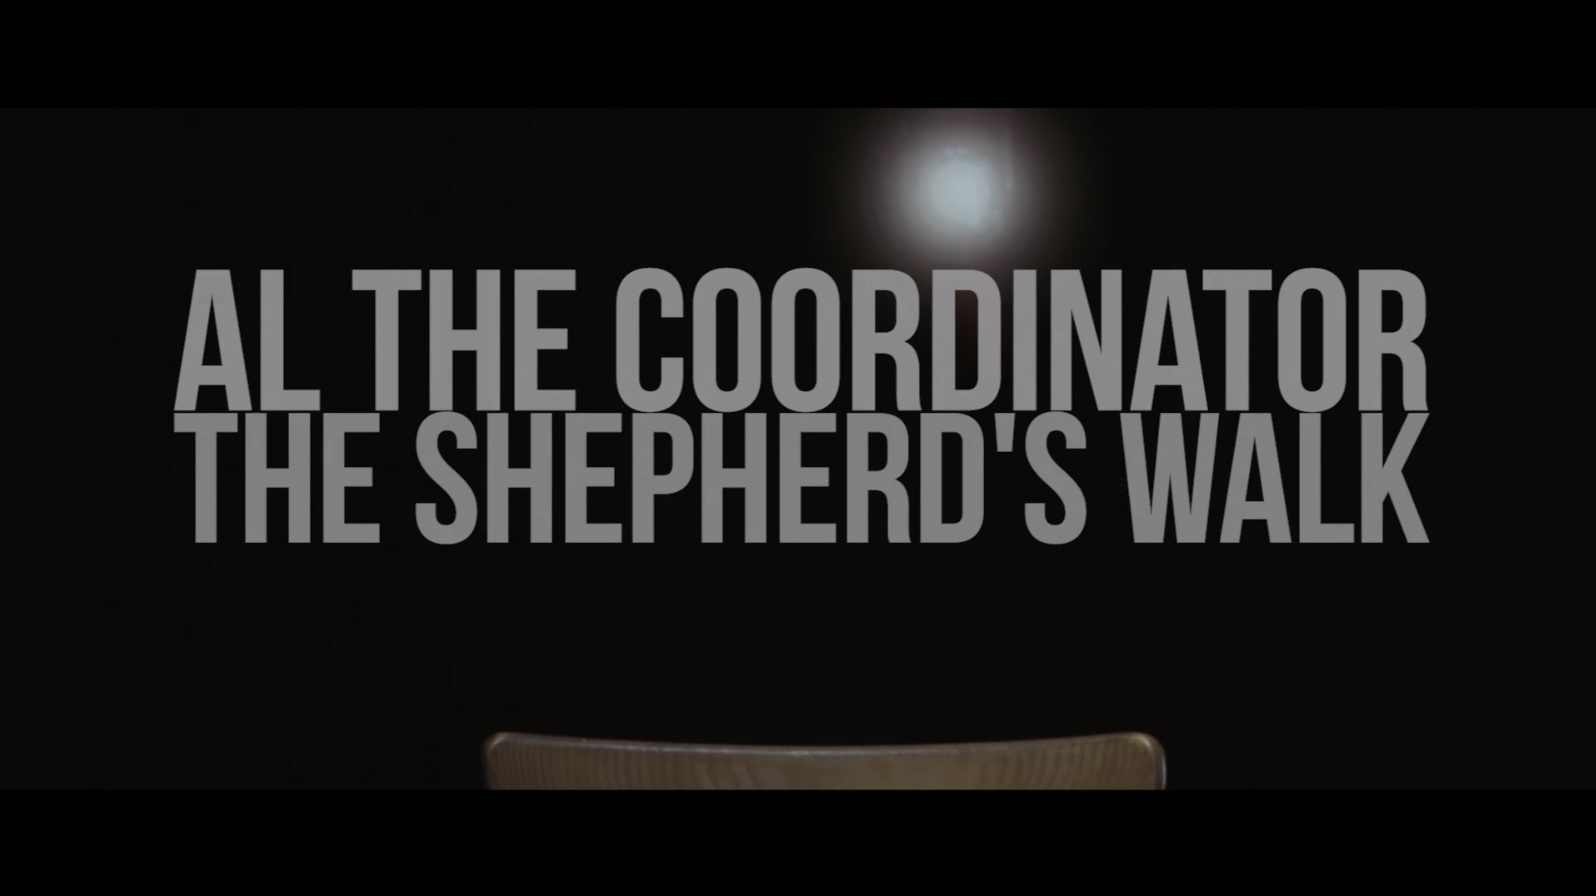 Al The Coordinator -The shepherd's walk